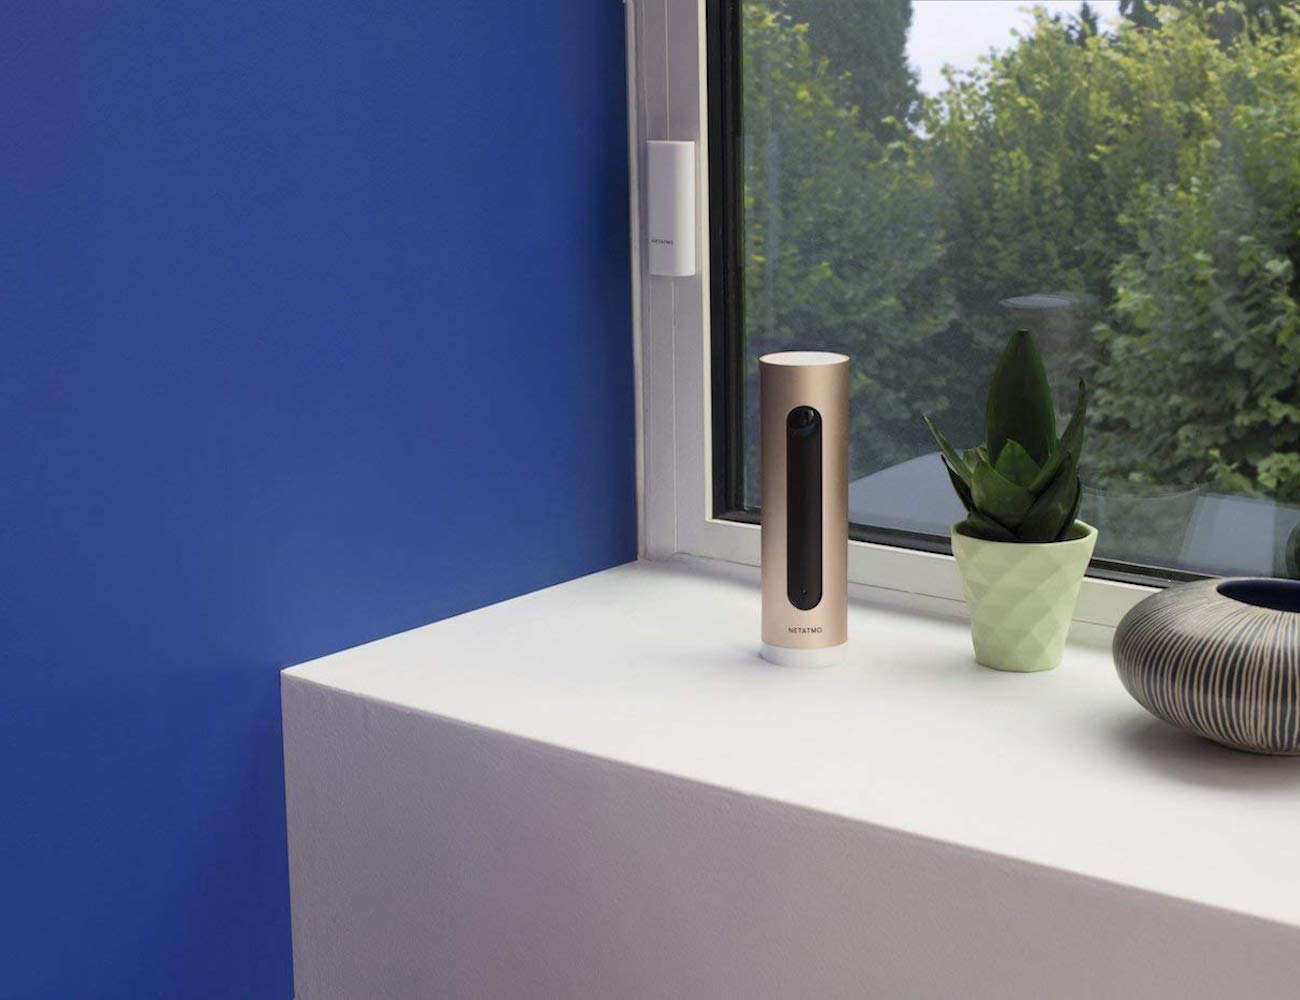 Welcome – Home Security Camera with Face Recognition by Netatmo